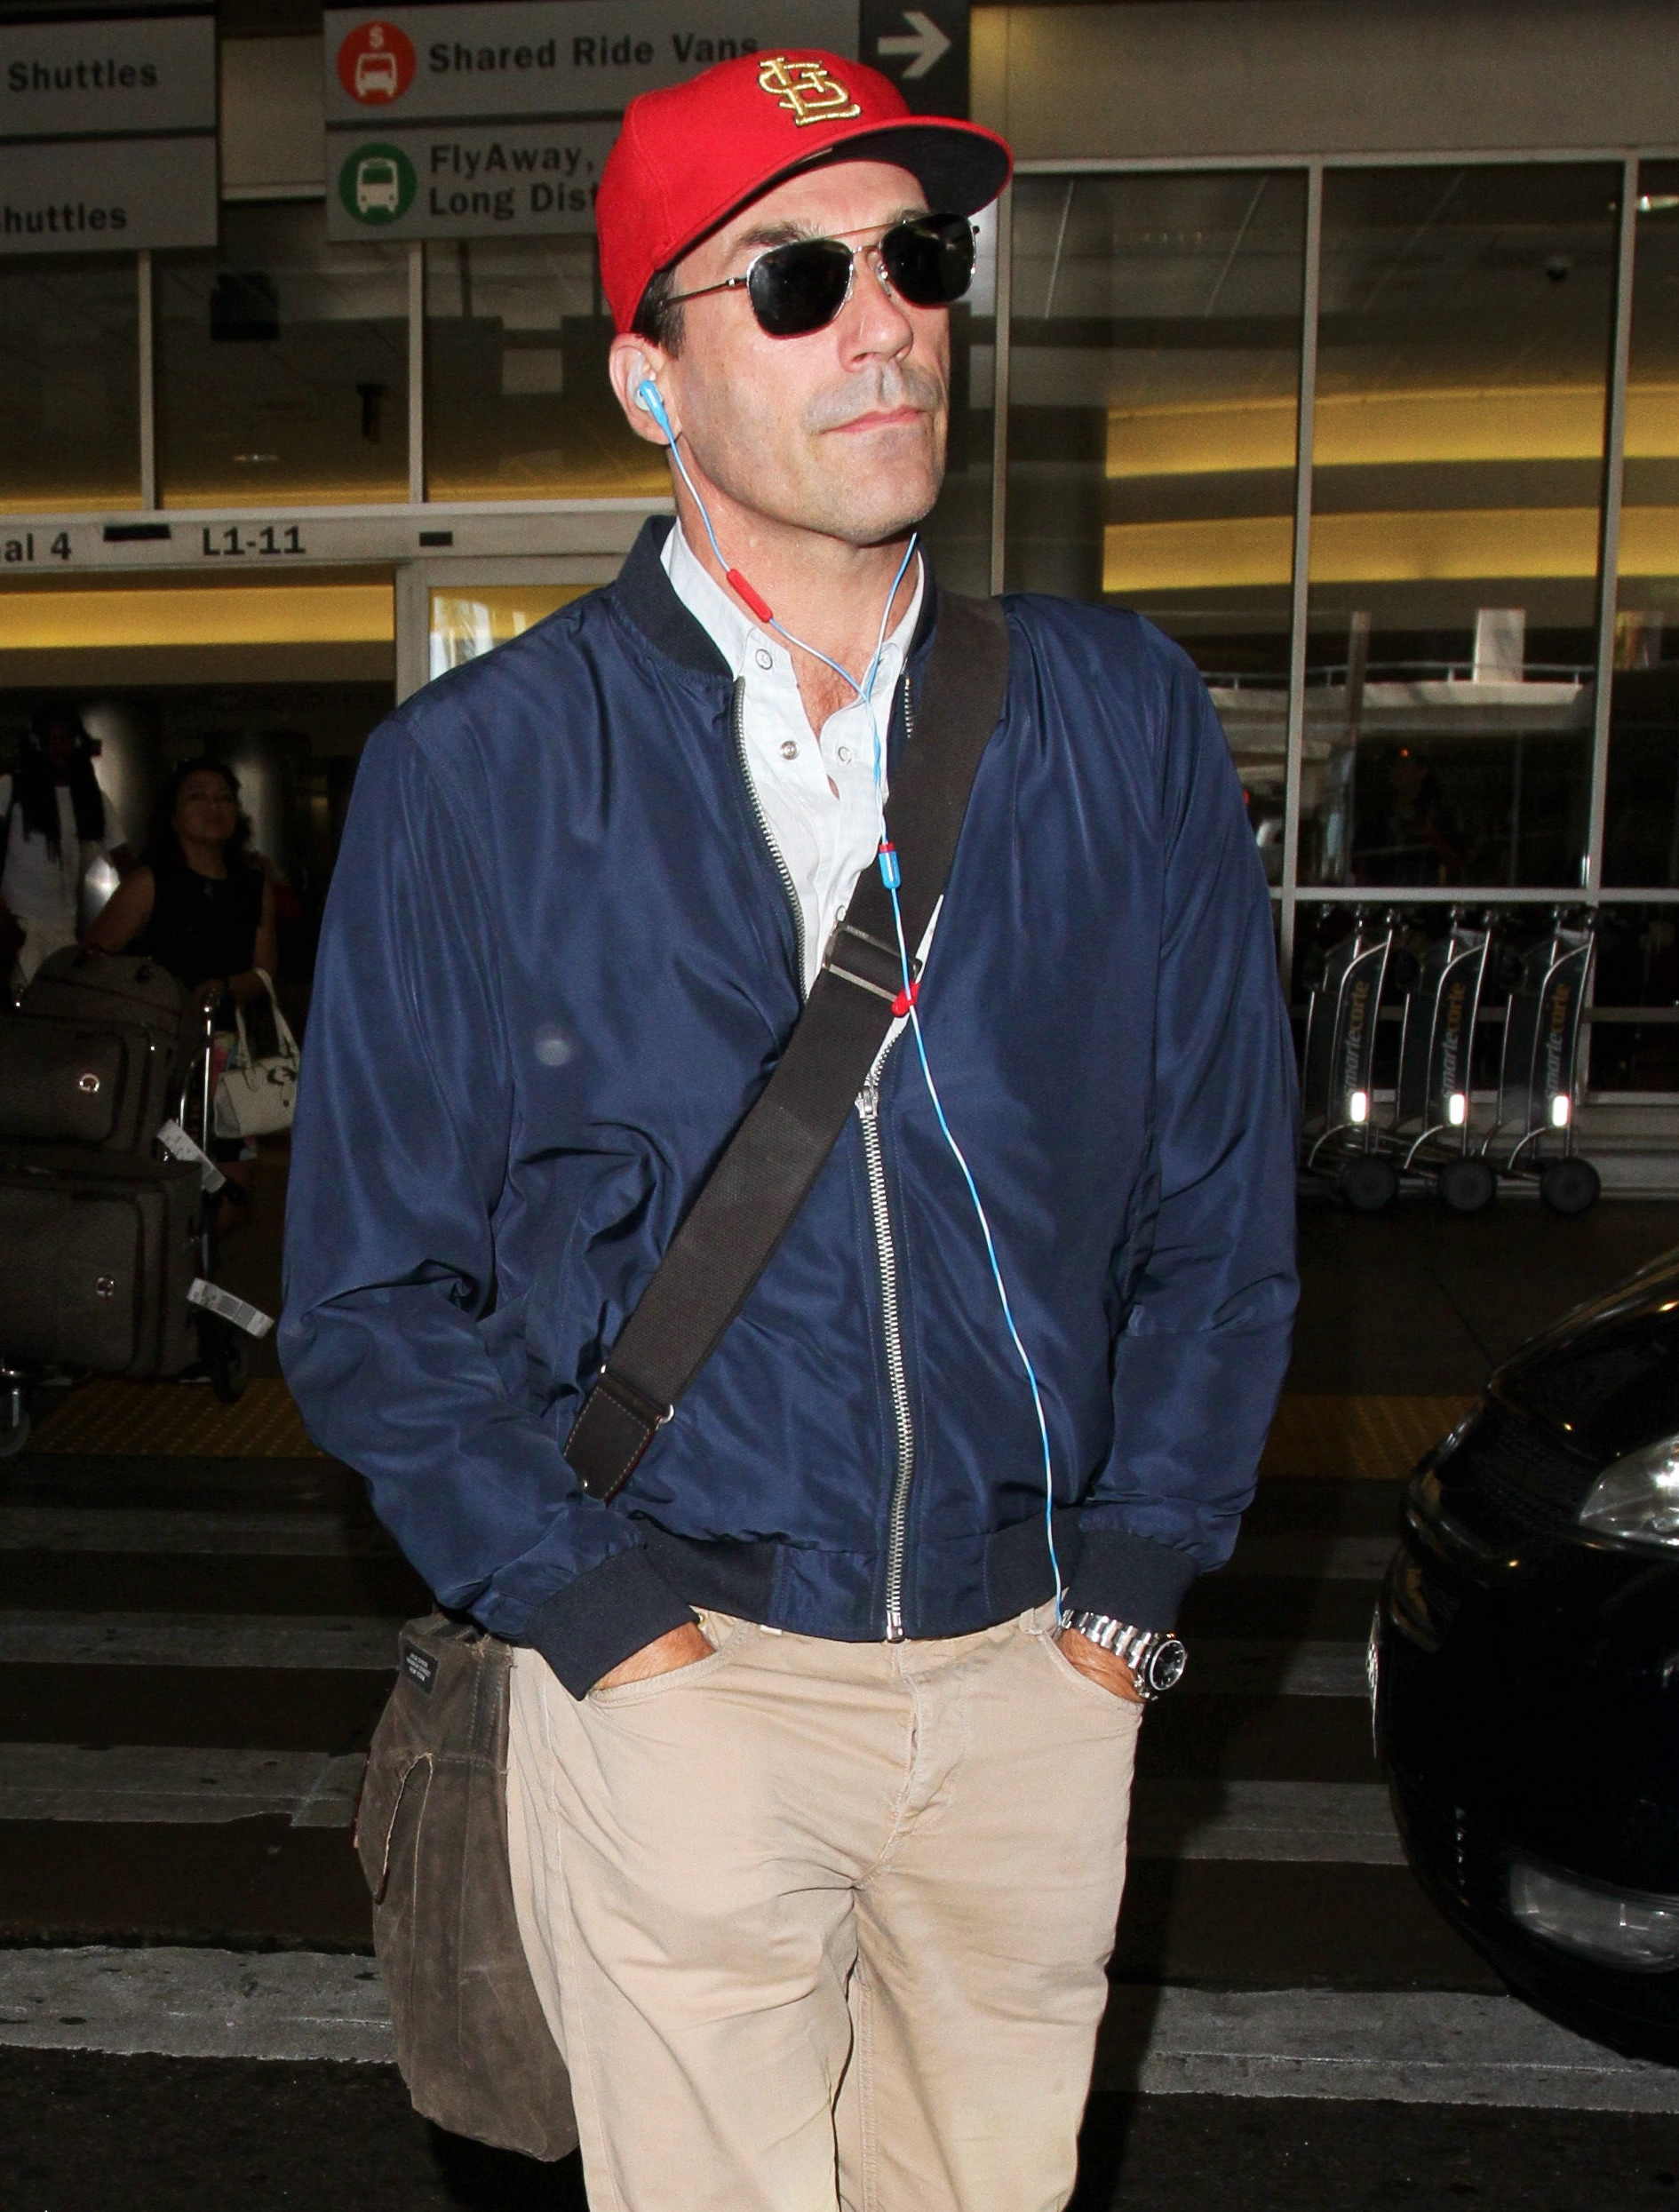 Jon Hamm, forse il futuro 'James Bond' all'aereoporto L'attore Jon Hamm sorride all'aereoporto di Los Angeles, e' in trattativa per interpretare il ruolo di James Bond La stella 'Mad Men' mette in mostra il suo cappello preferito dei St. Louis Cardinals, un bomber blu di seta, pantaloni kaki e stivali neri. Wednesday, July 27, 2016 - Jon Hamm flashes a smile looking a bit worn out as he arrives in Los Angeles amid reports he is among those in talks to play the next James Bond. The 'Mad Men' star sports his favorite St. Louis Cardinals cap, a blue silk bomber, khaki pants and black boots. Jon Hamm looks tired at LAX as James Bond speculation swirls Gio/X17online.com JonHammLax270716 LaPresse -- Only Italy